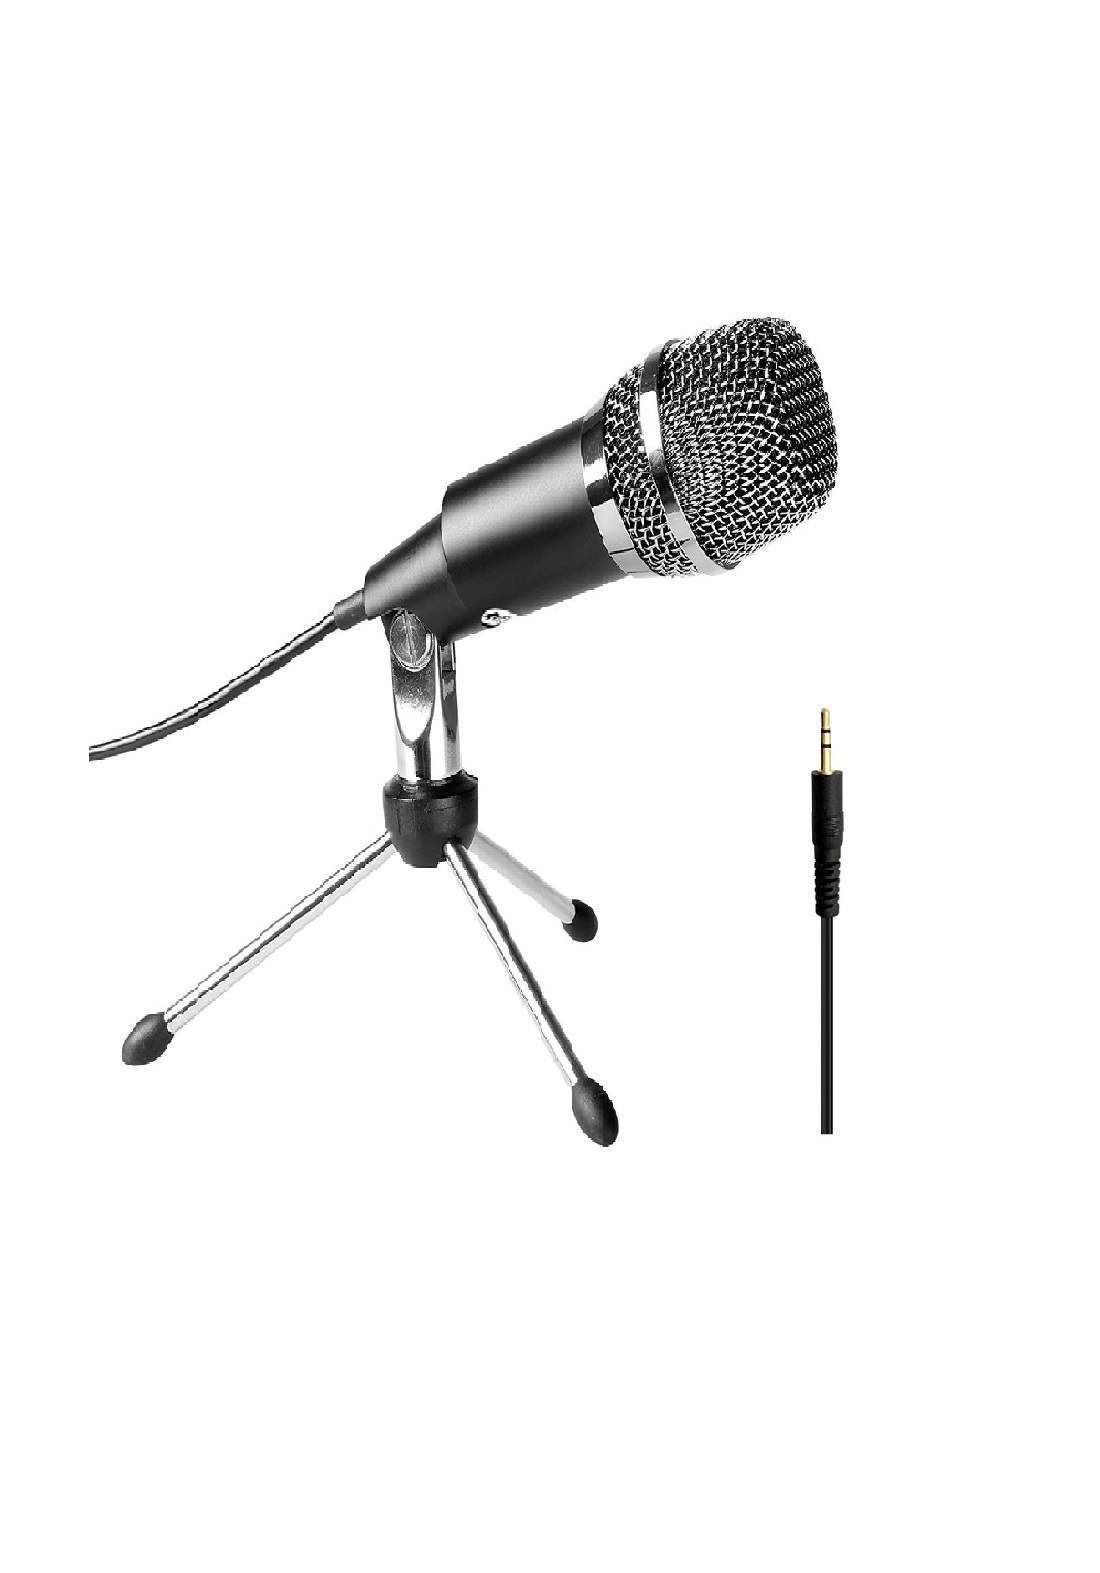 FIFINE K667 Home KTV Handheld Mic Universal Sound Recording Microphone with Tripod Stand for PC & L ميكرفون